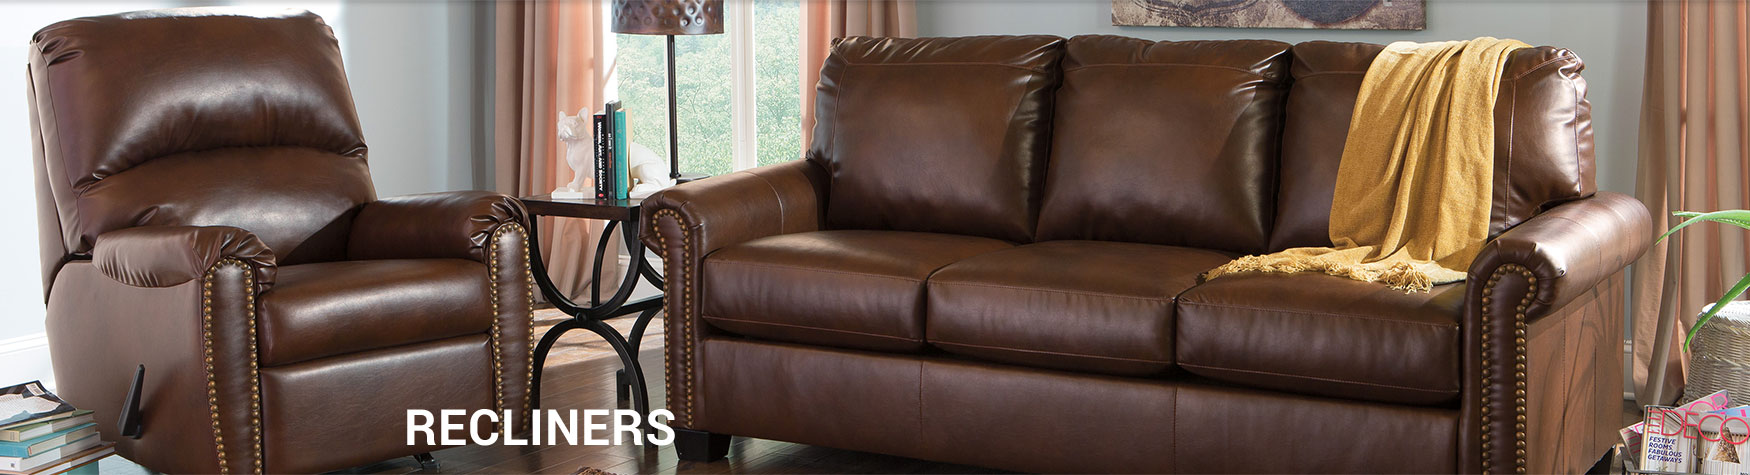 Living Room - Recliners - Spokane Furniture Company